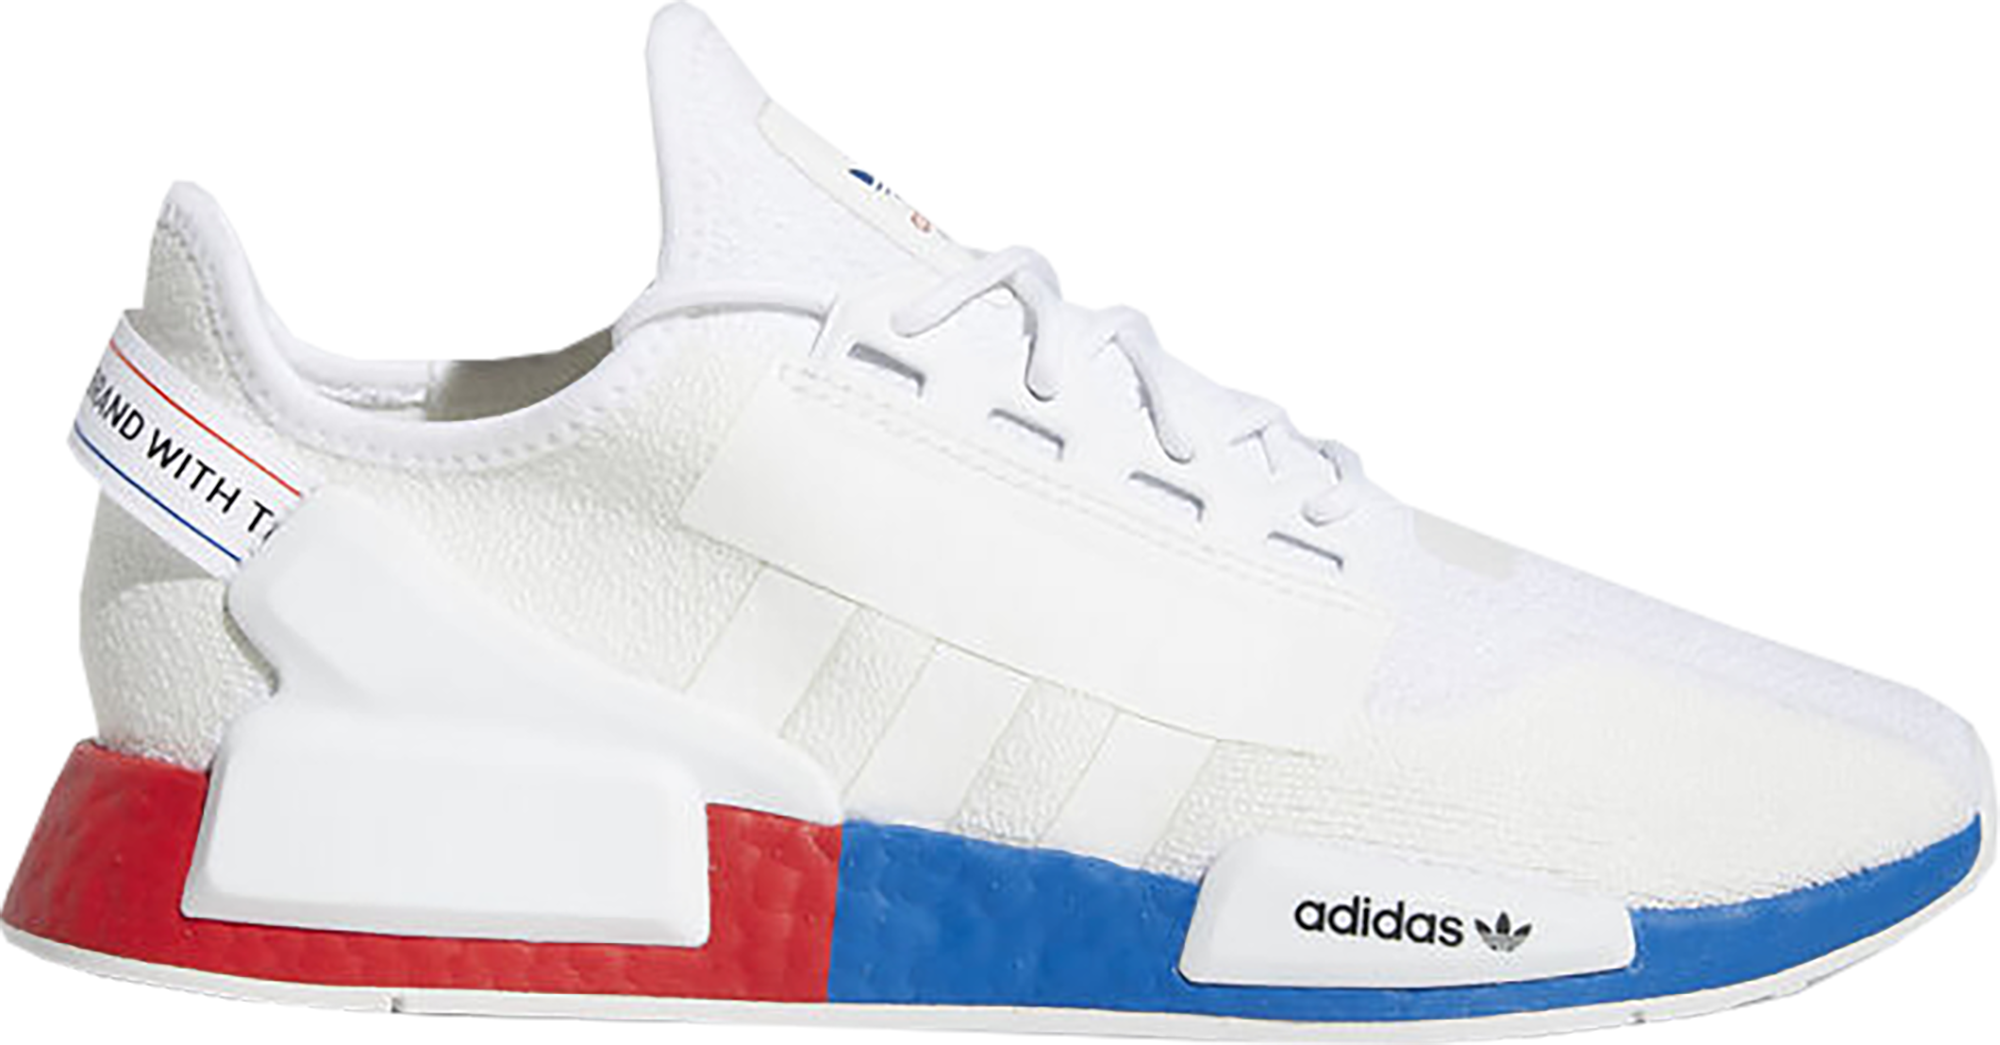 adidas NMD R1 White Red Blue - FX4148